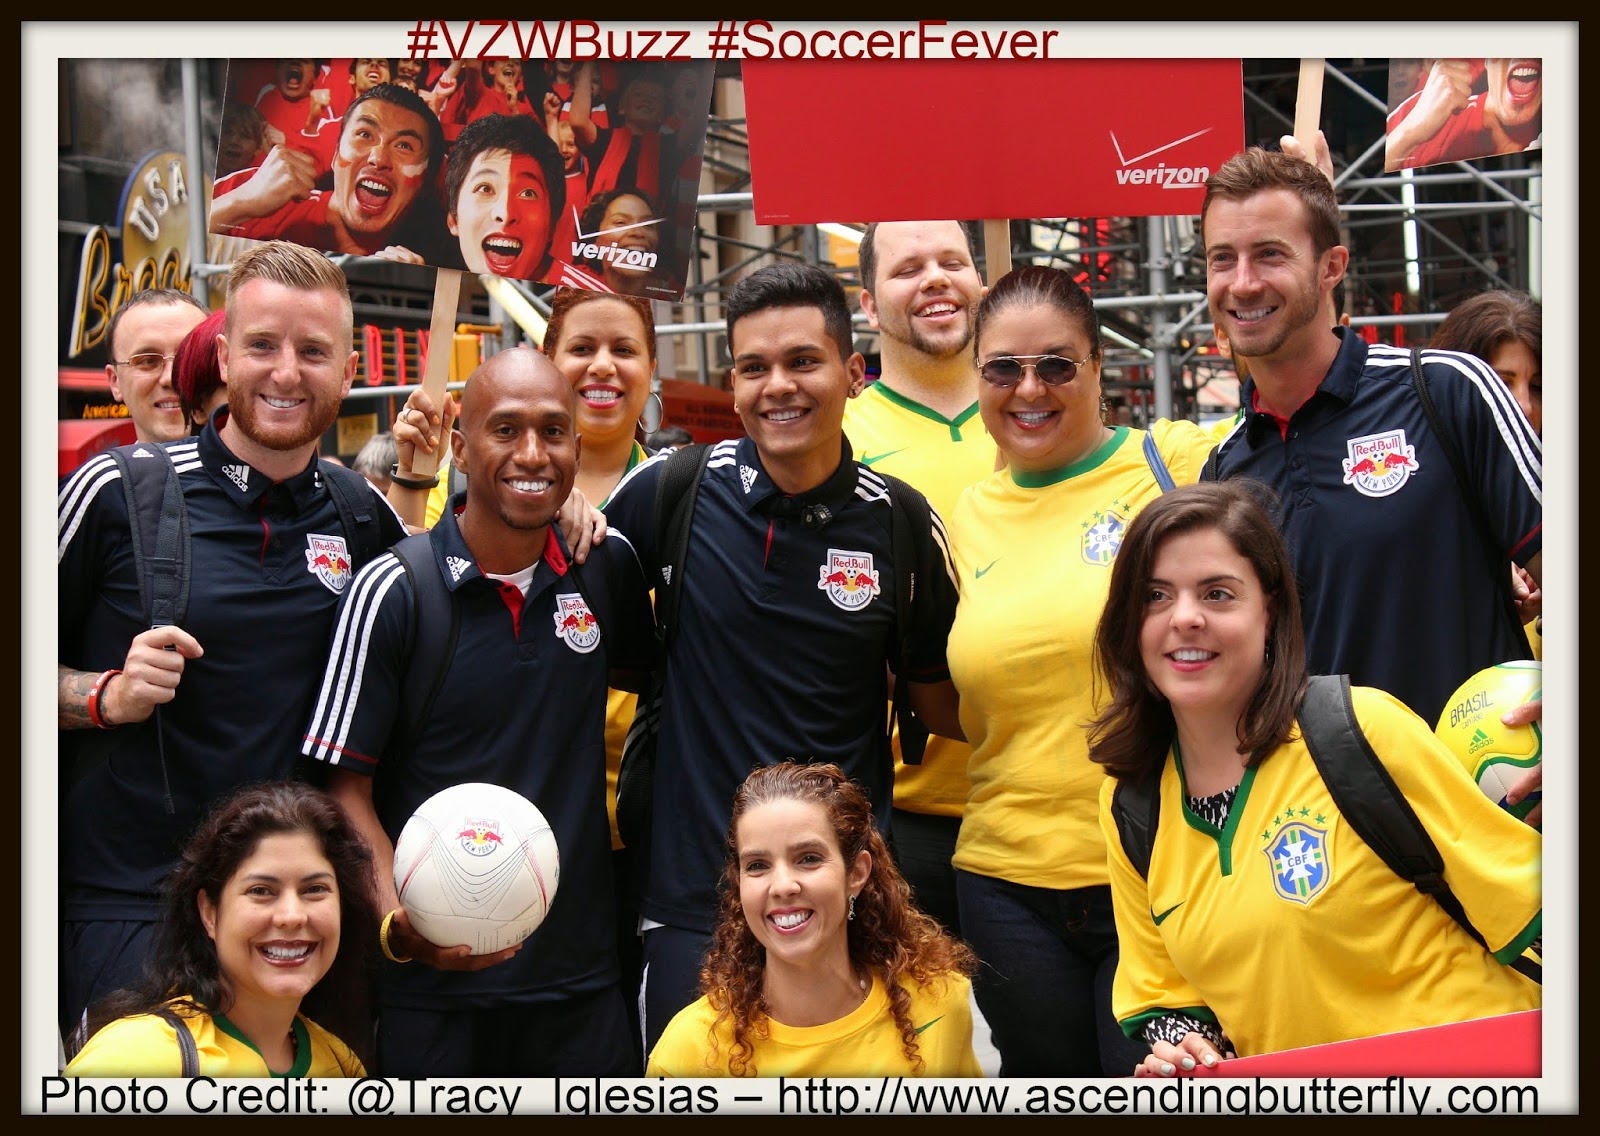 The New York Red Bulls and New York Based Bloggers #VZWBuzz #SoccerFever